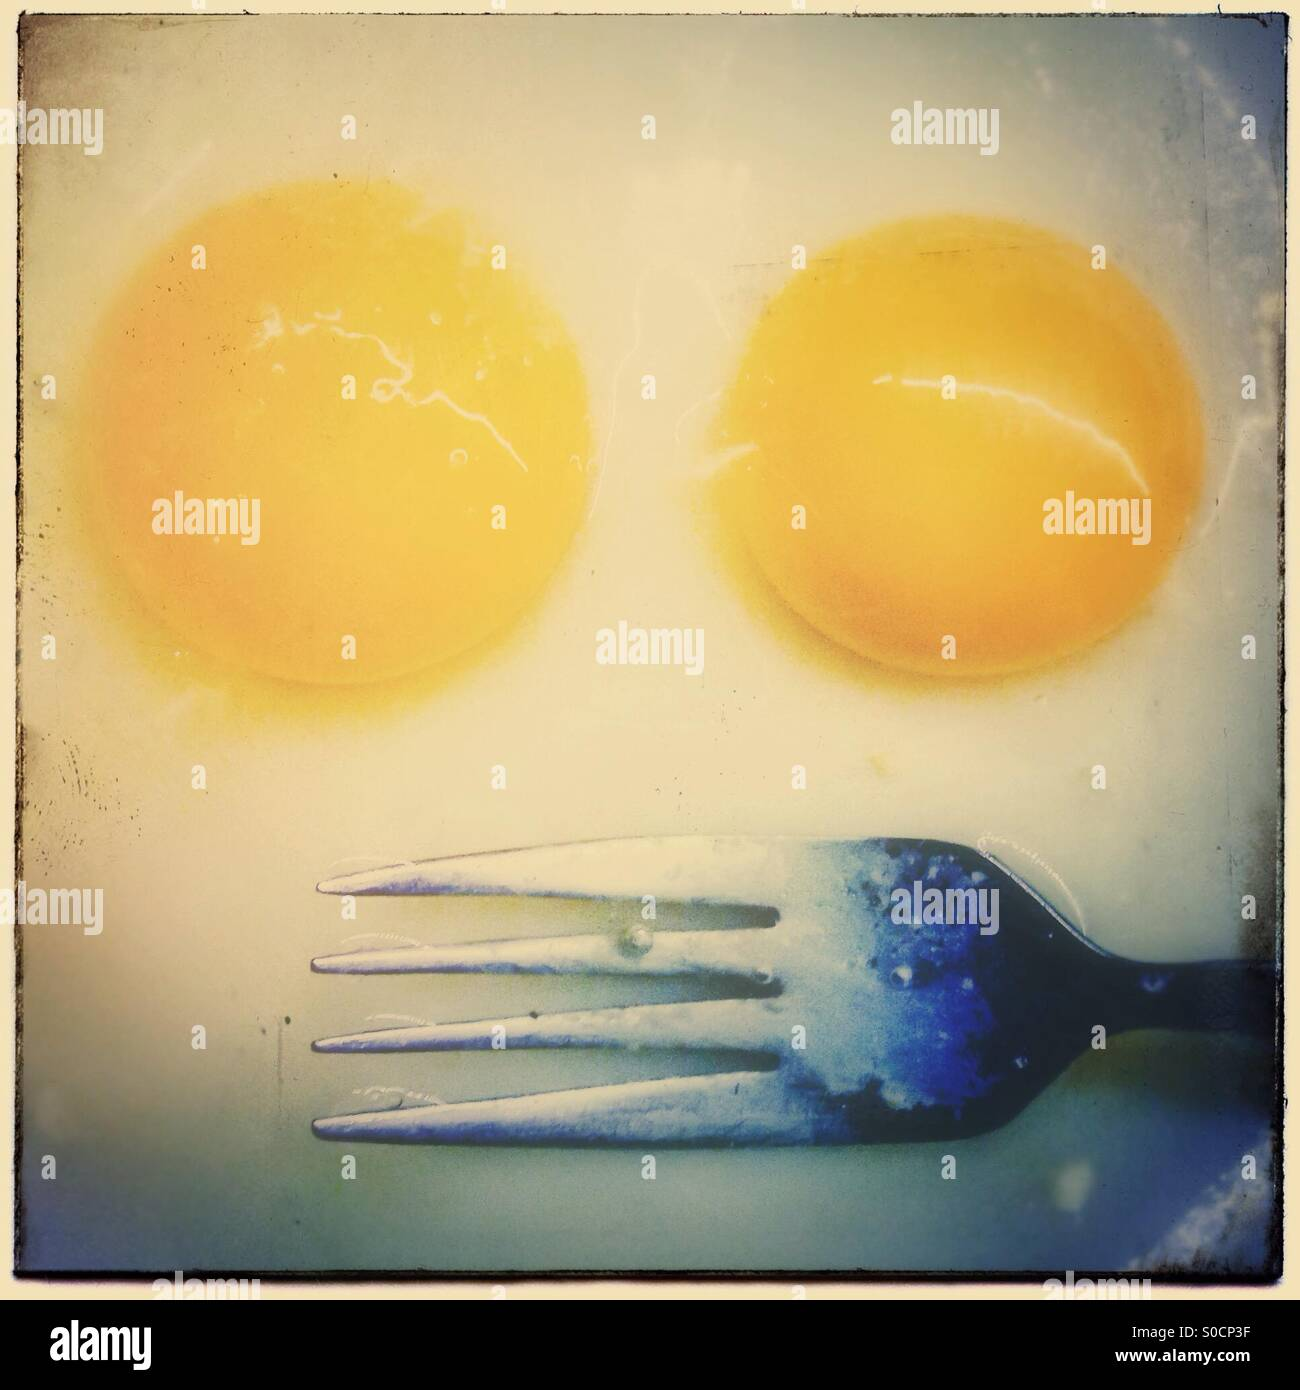 Two broken egg yolks and a fork. Faces in objects - Stock Image